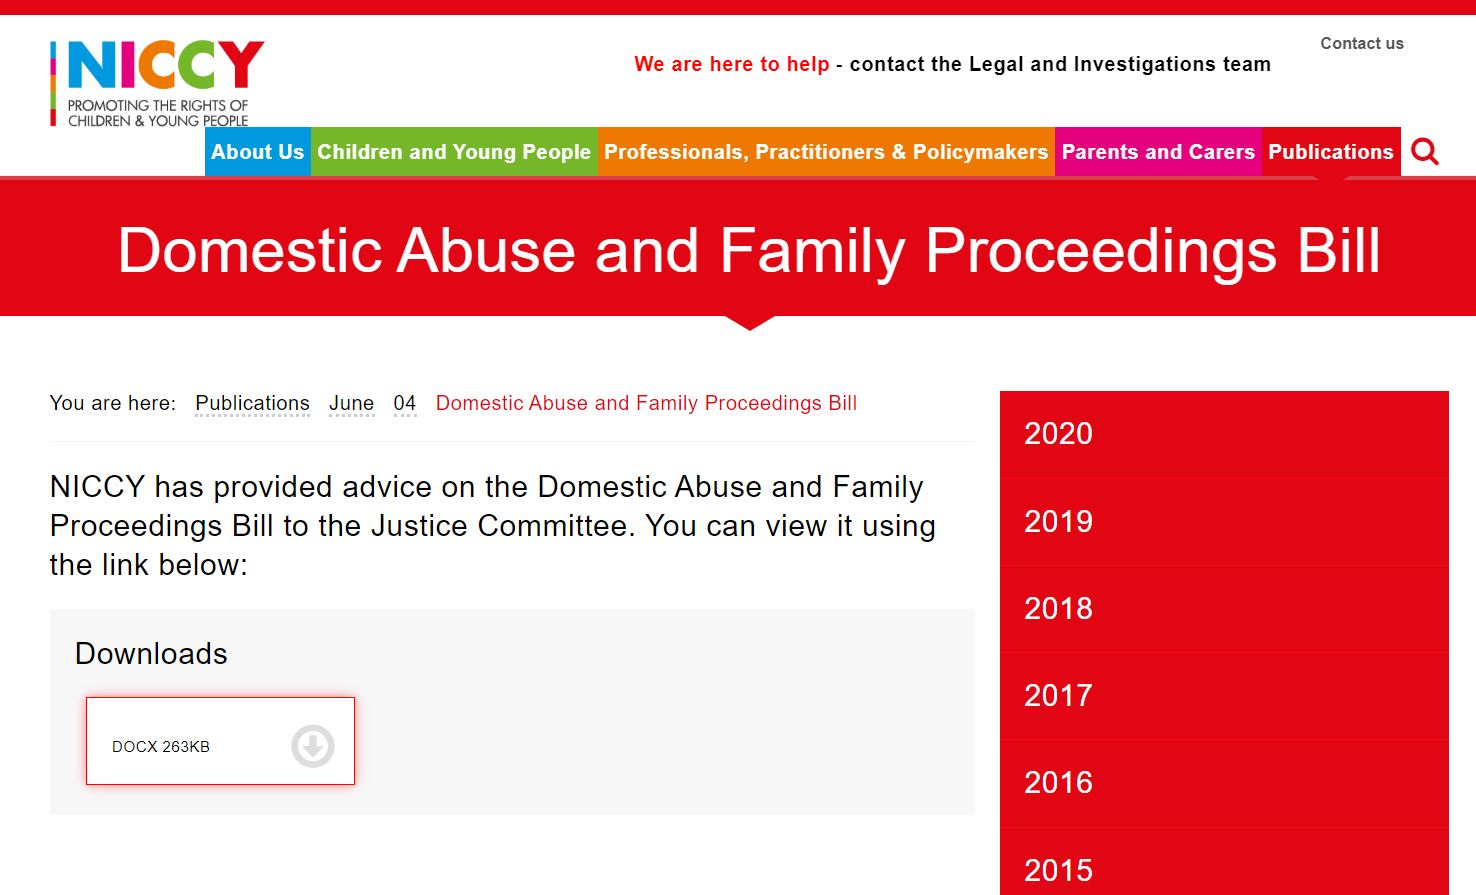 Image of Domestic Abuse and Family Proceedings Bill